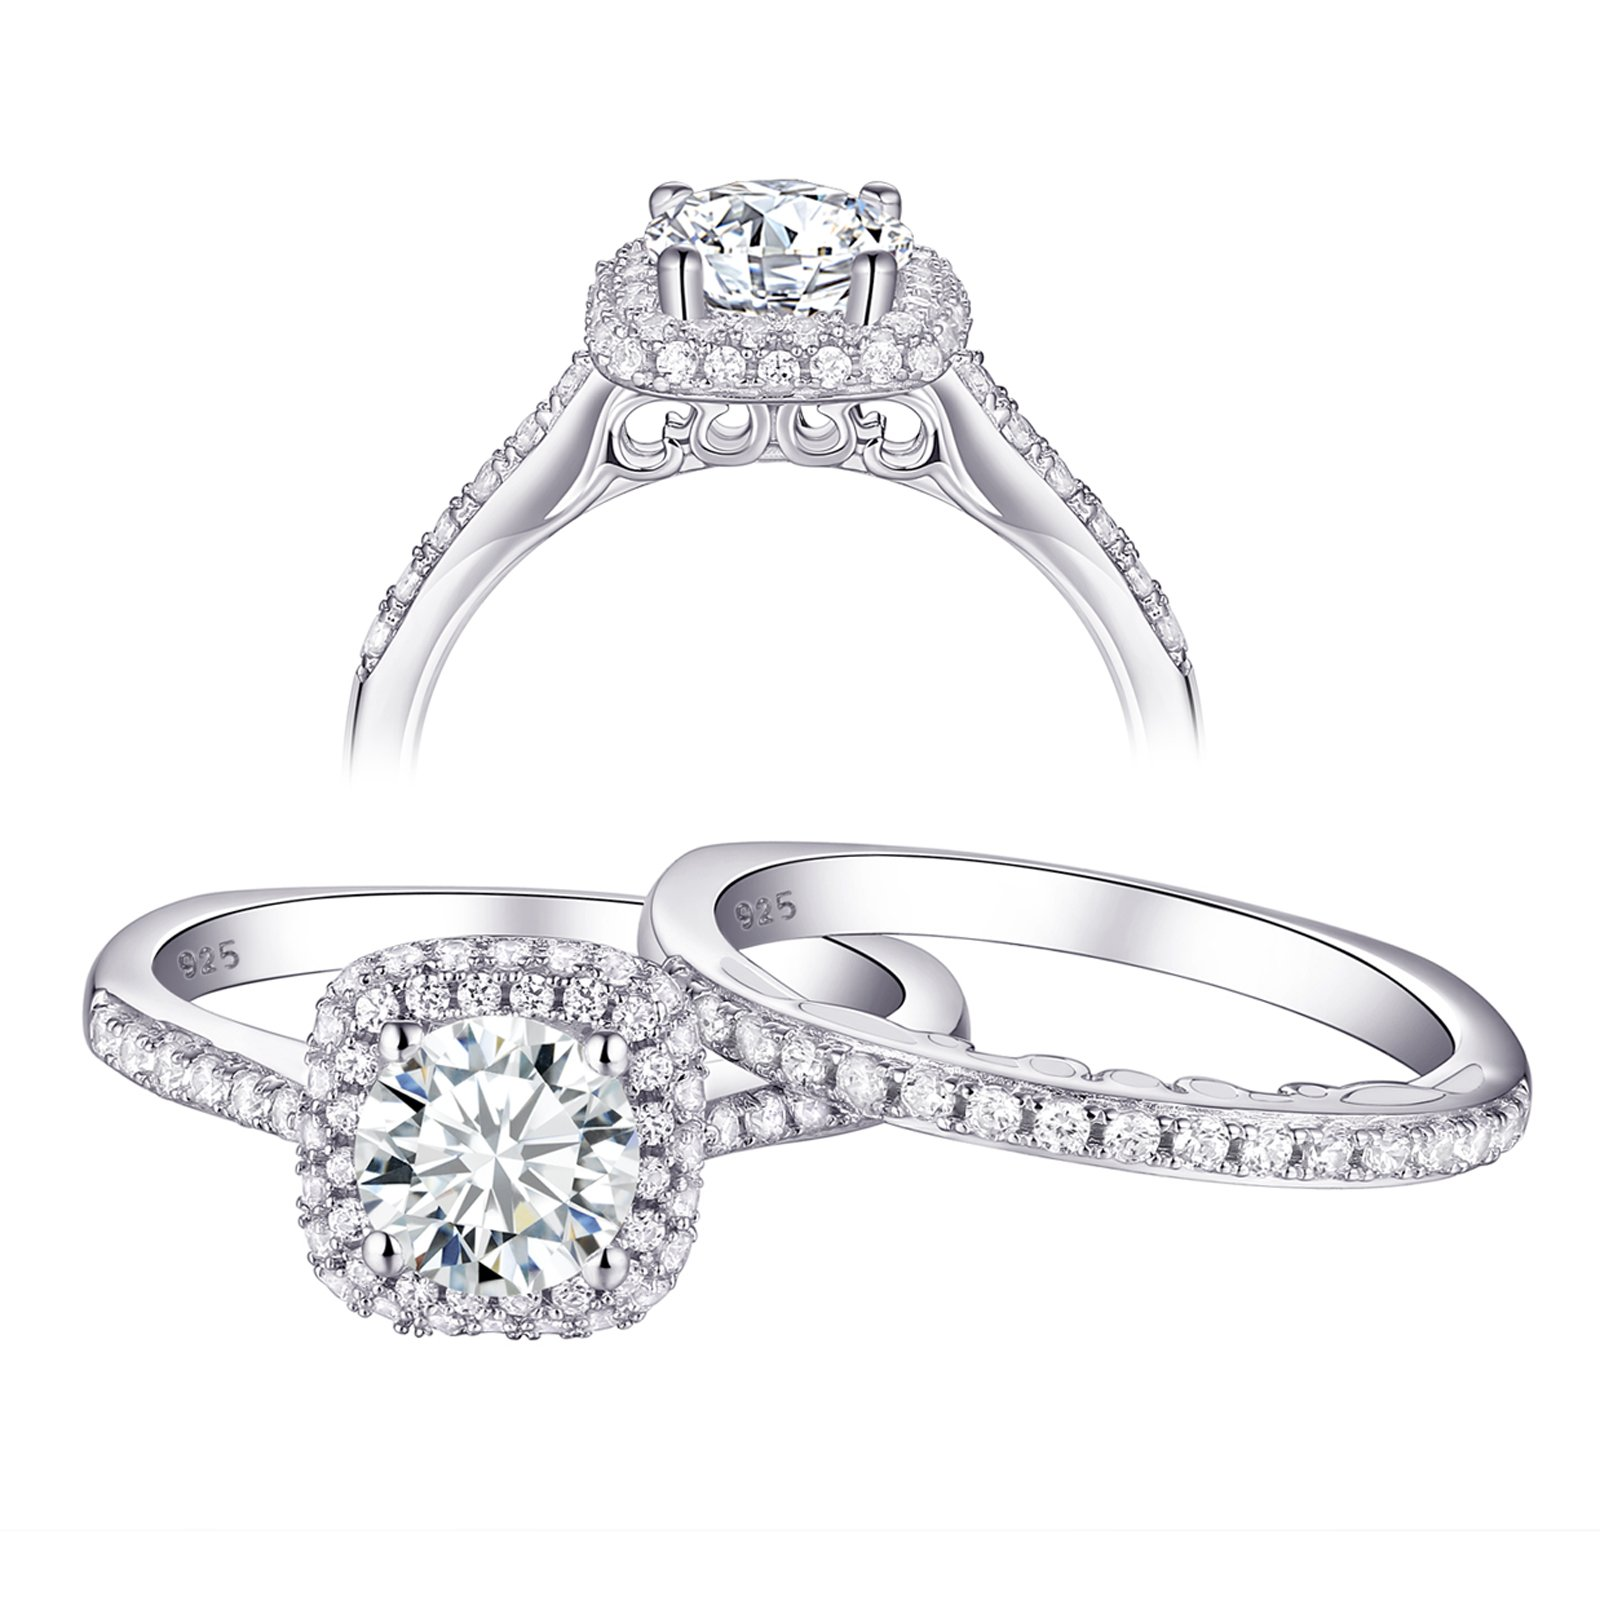 Newshe Wedding Engagement Ring Set Women AAA Cz 1.6ct Round 925 Sterling Silver Size 6